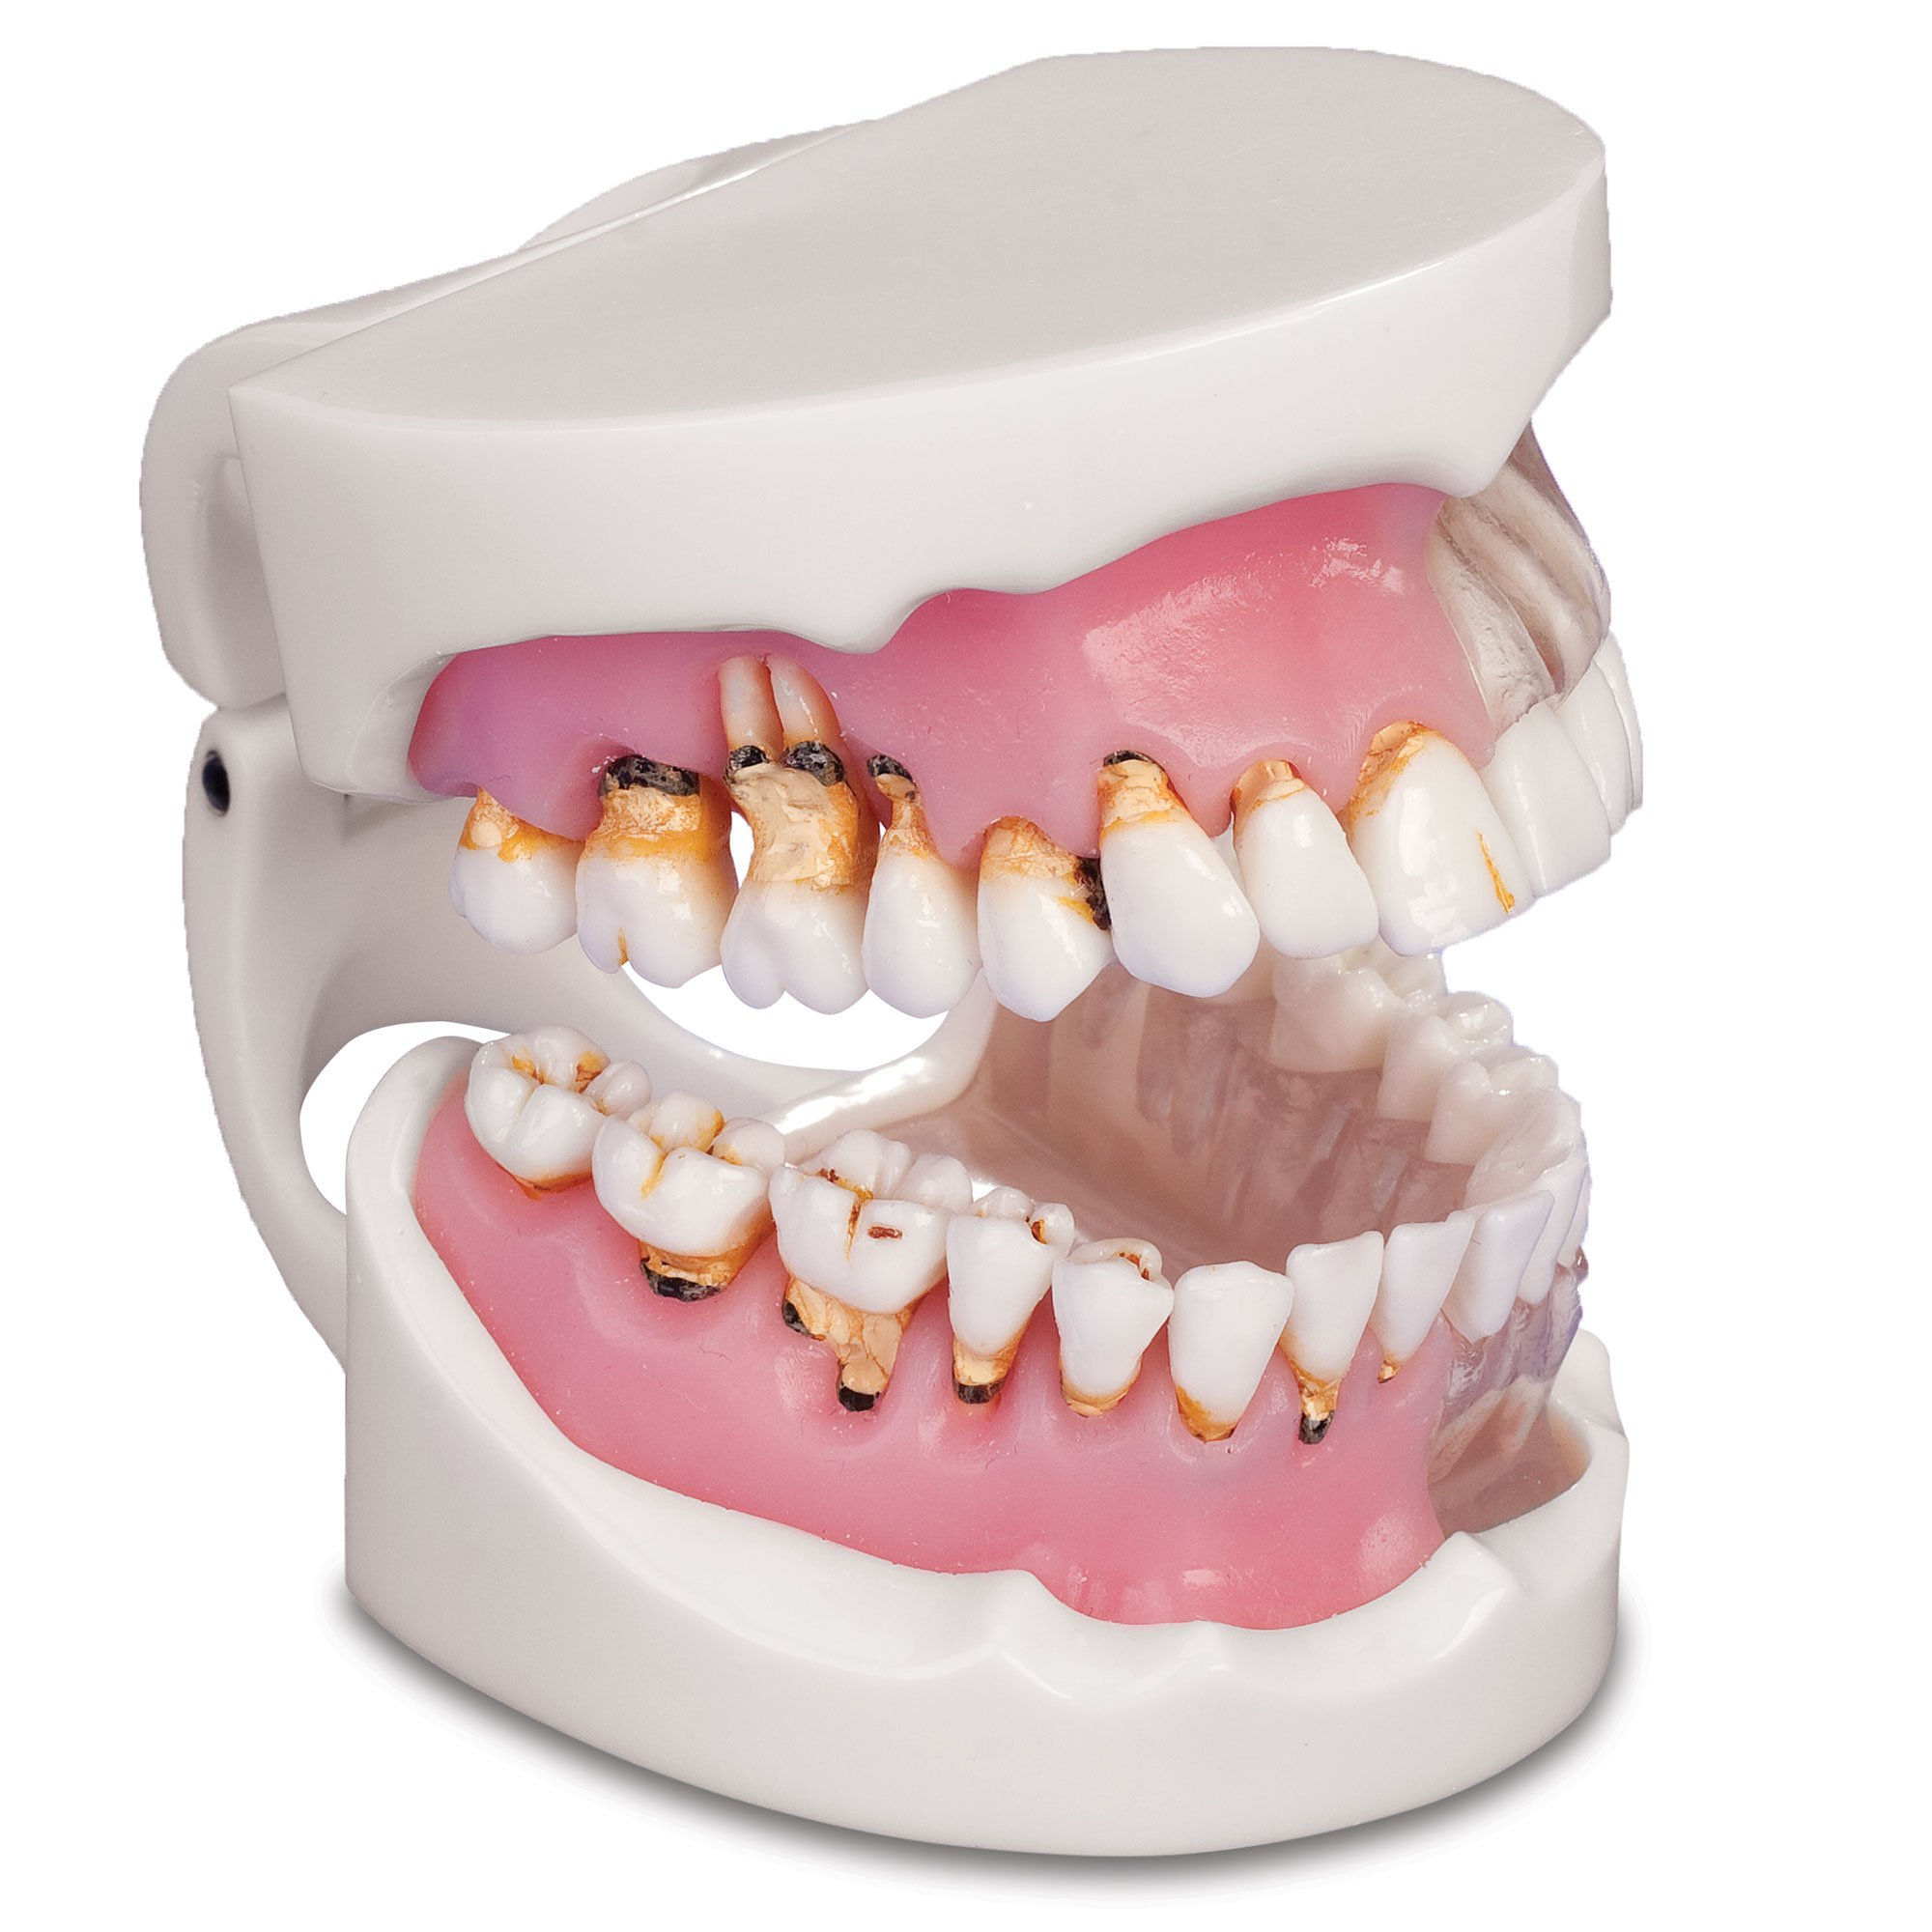 Practicon 4112128 Pathological Gingivitis Model